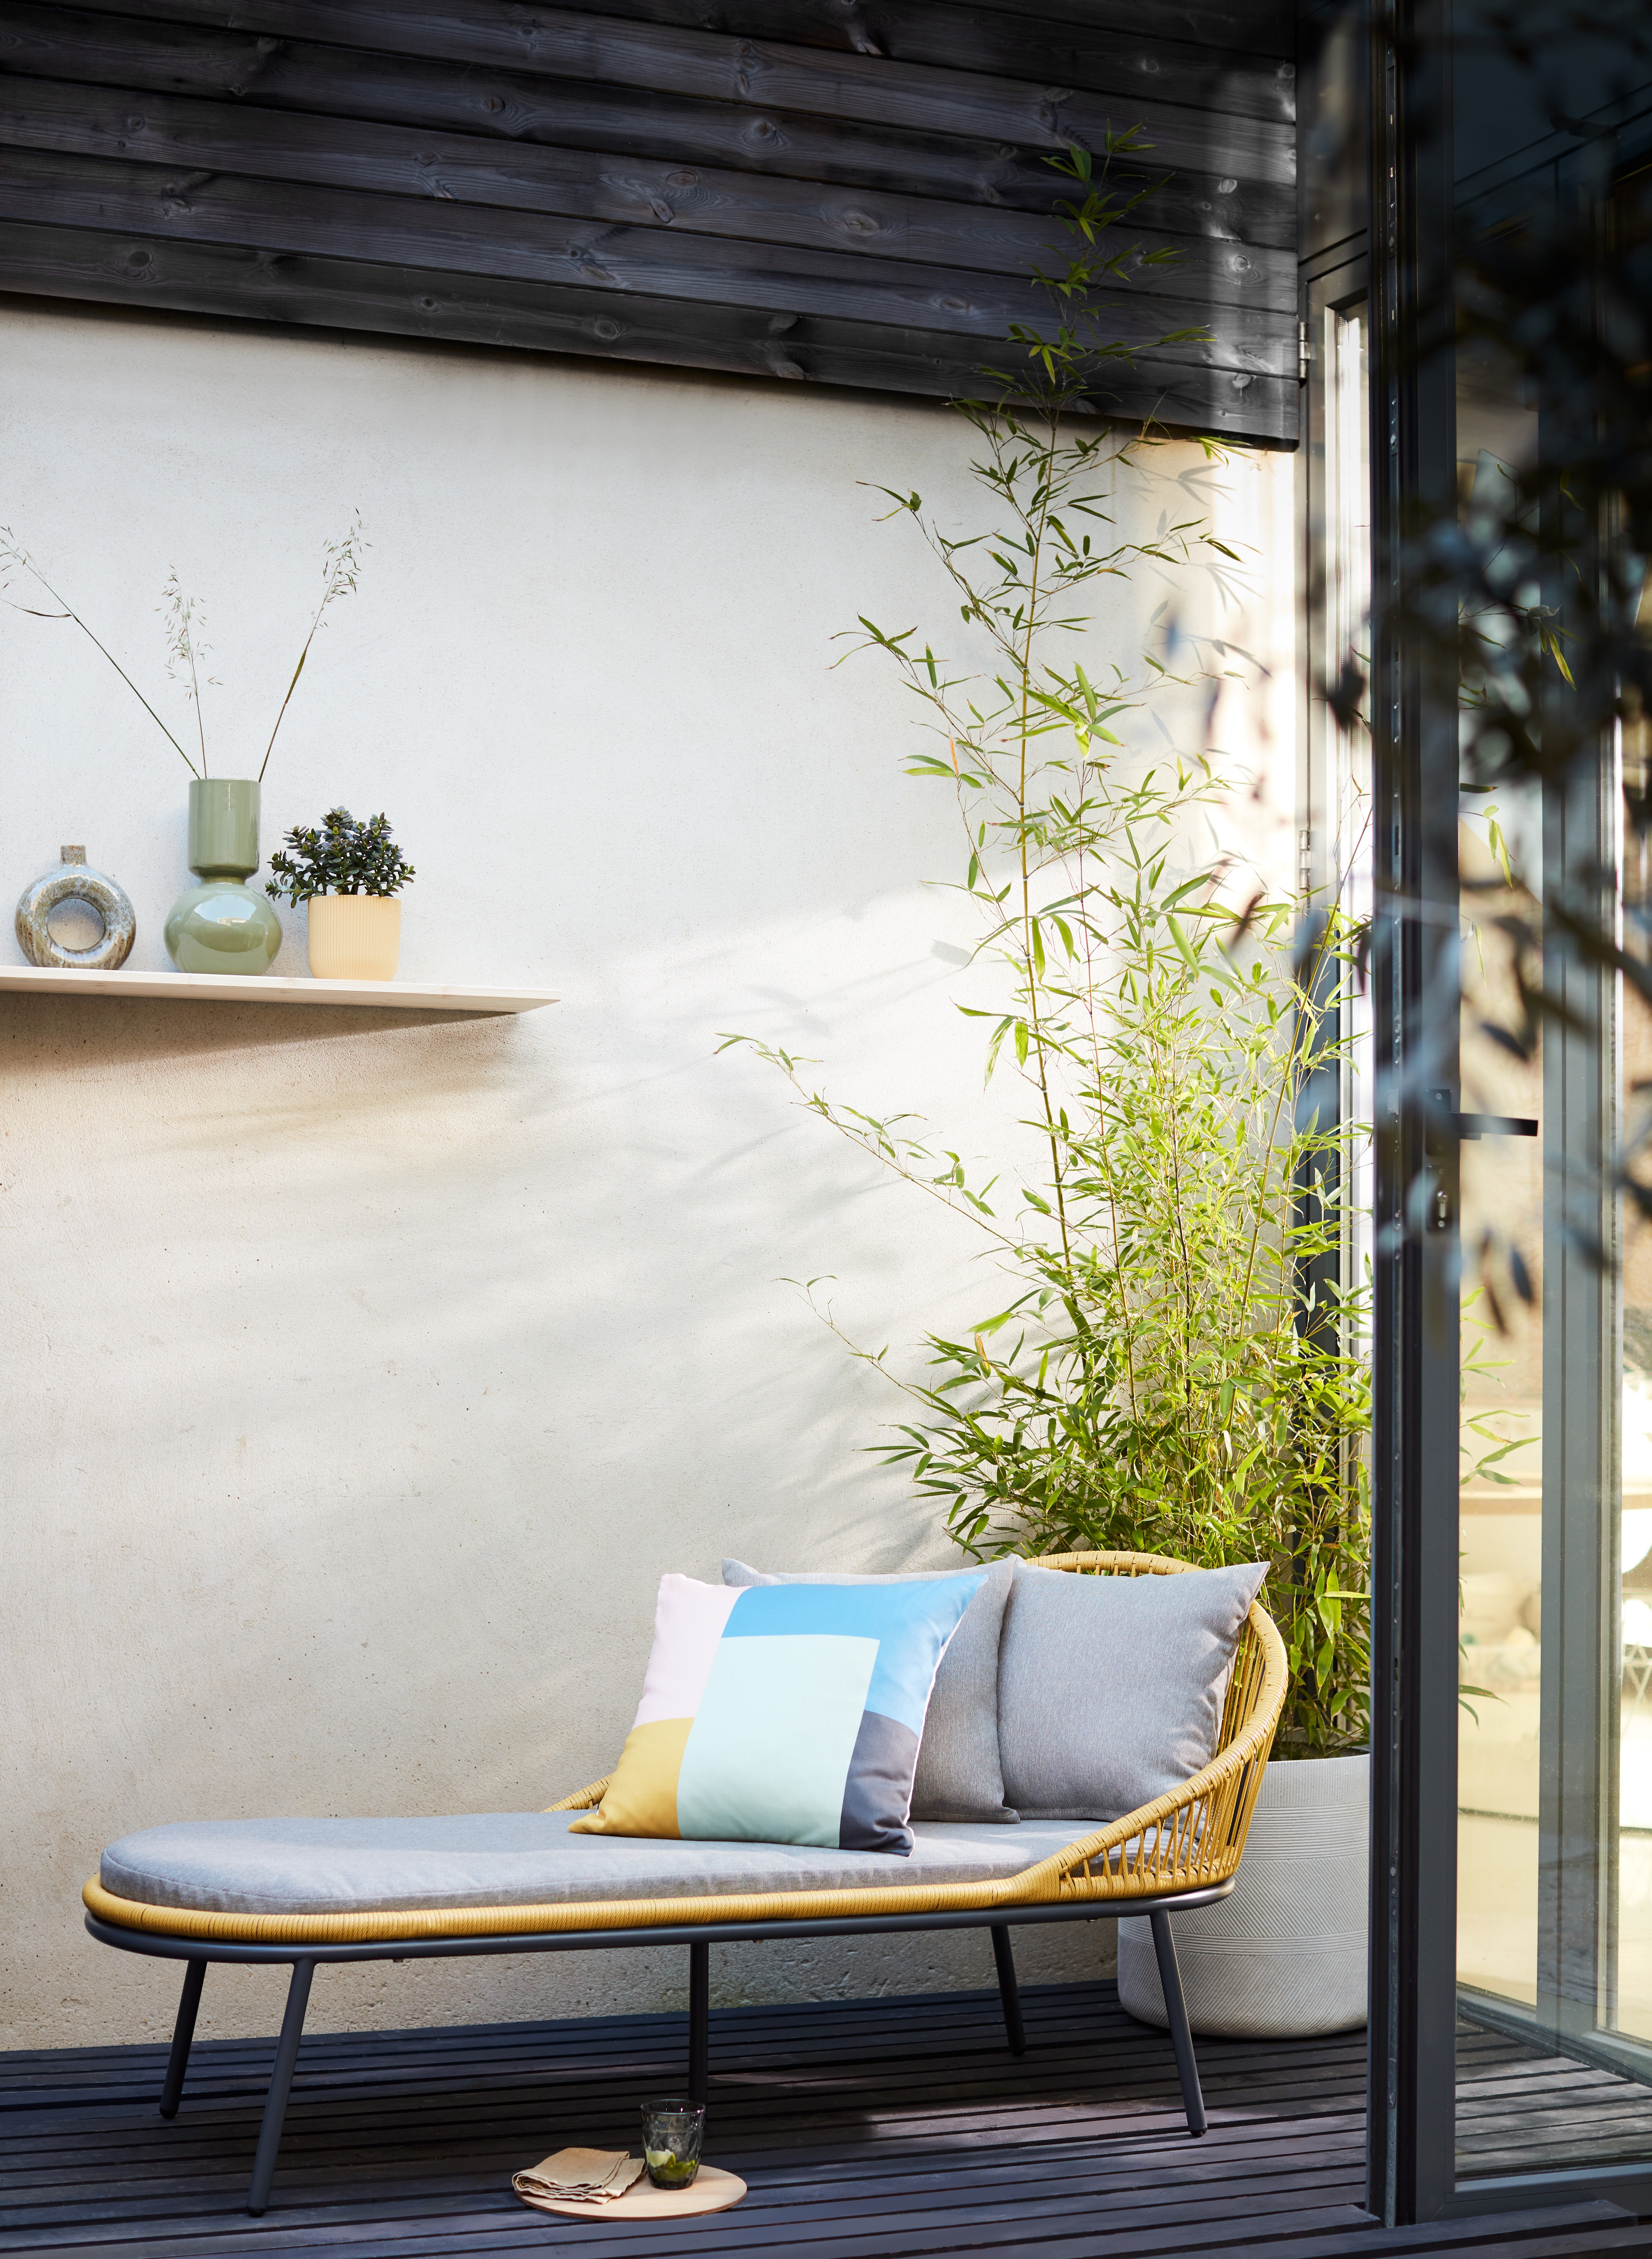 Woven and metal indoor outdoor chaise longe / daybed. With retro style and a nod to Scandi design, perfect for gardens and balconies